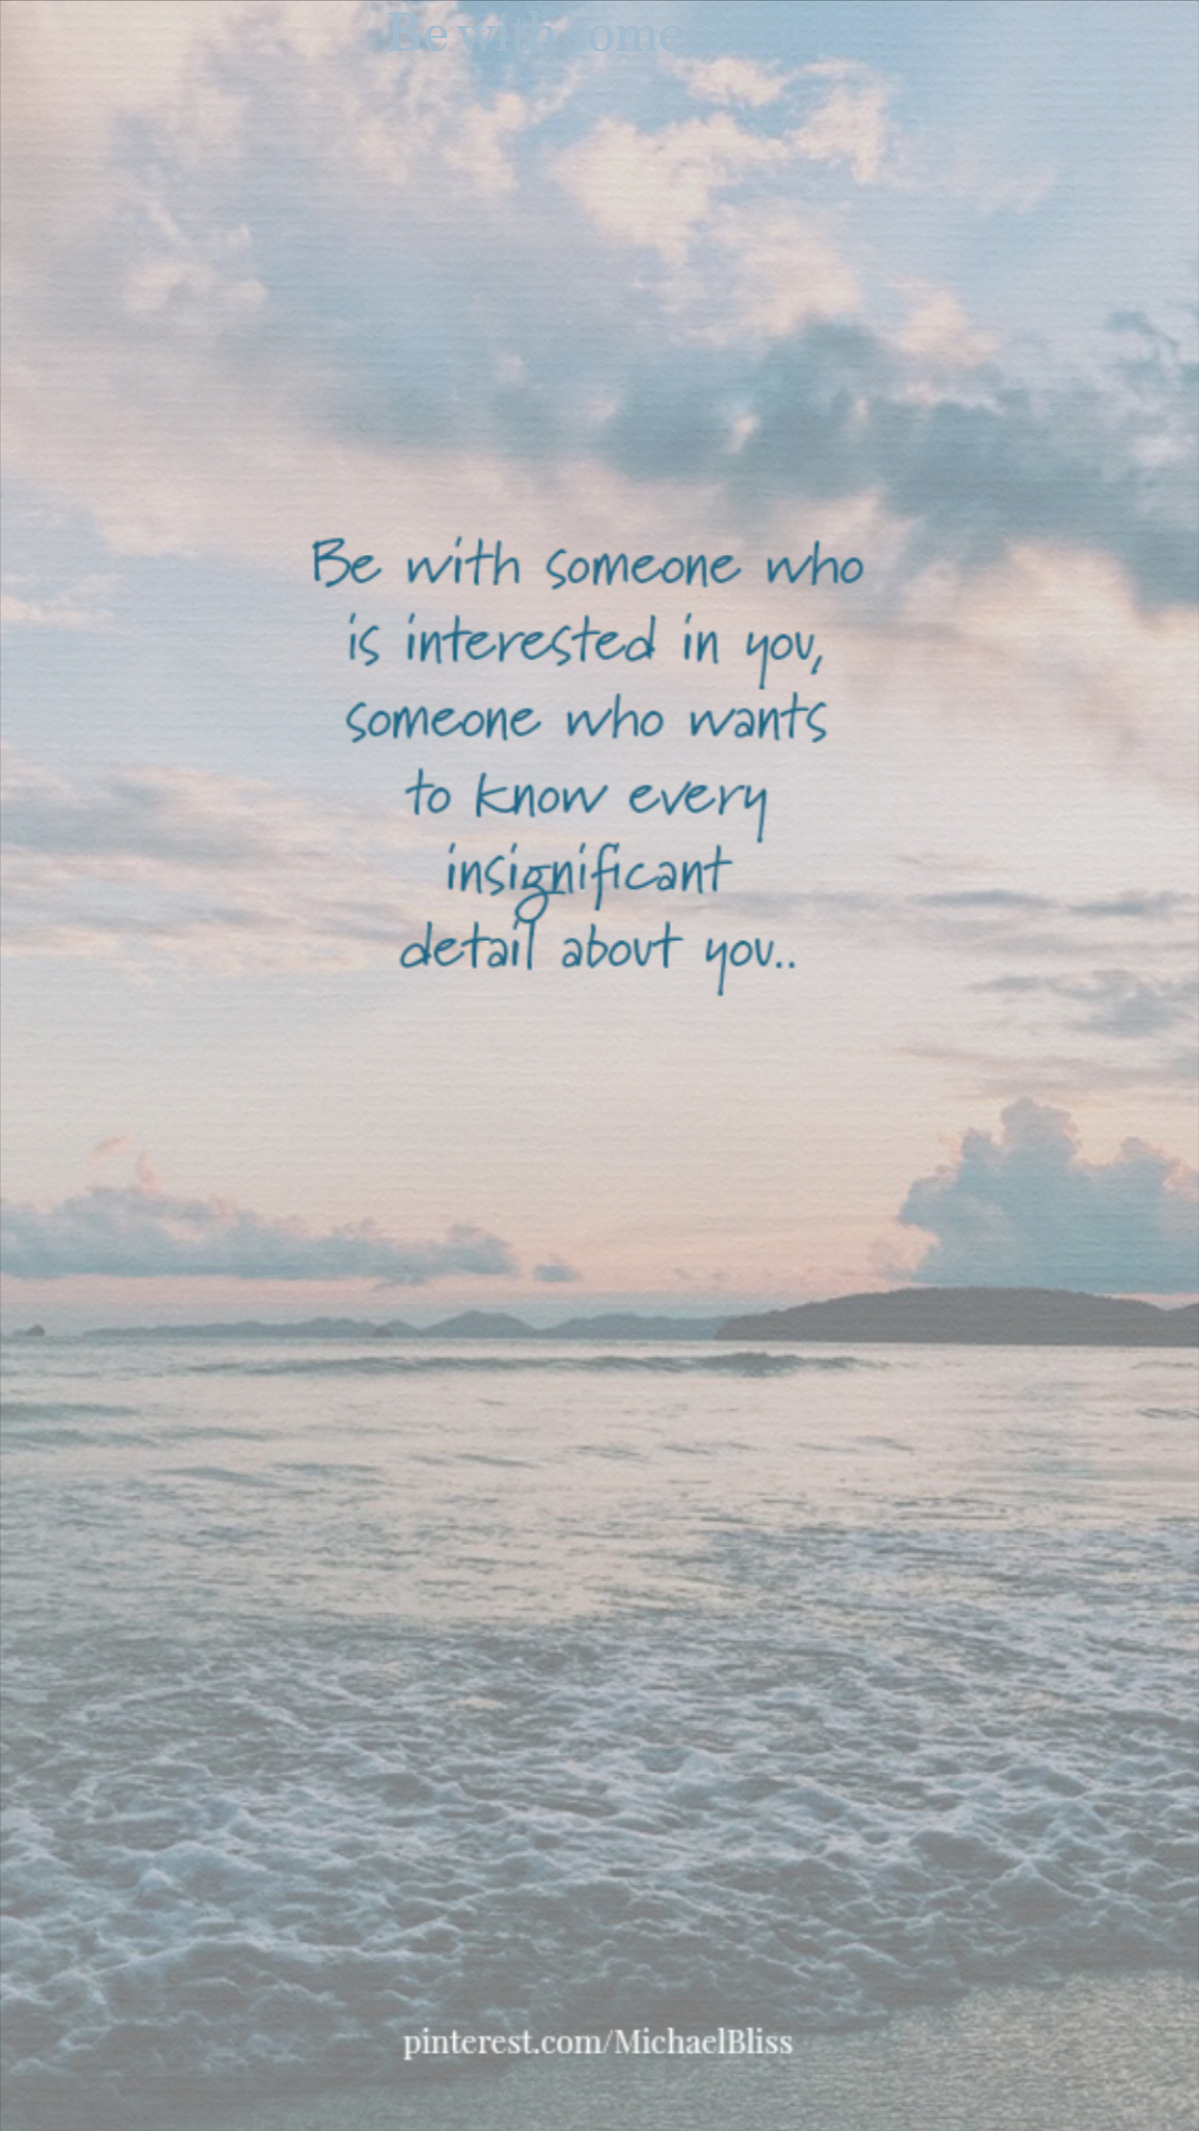 Be with someone who is